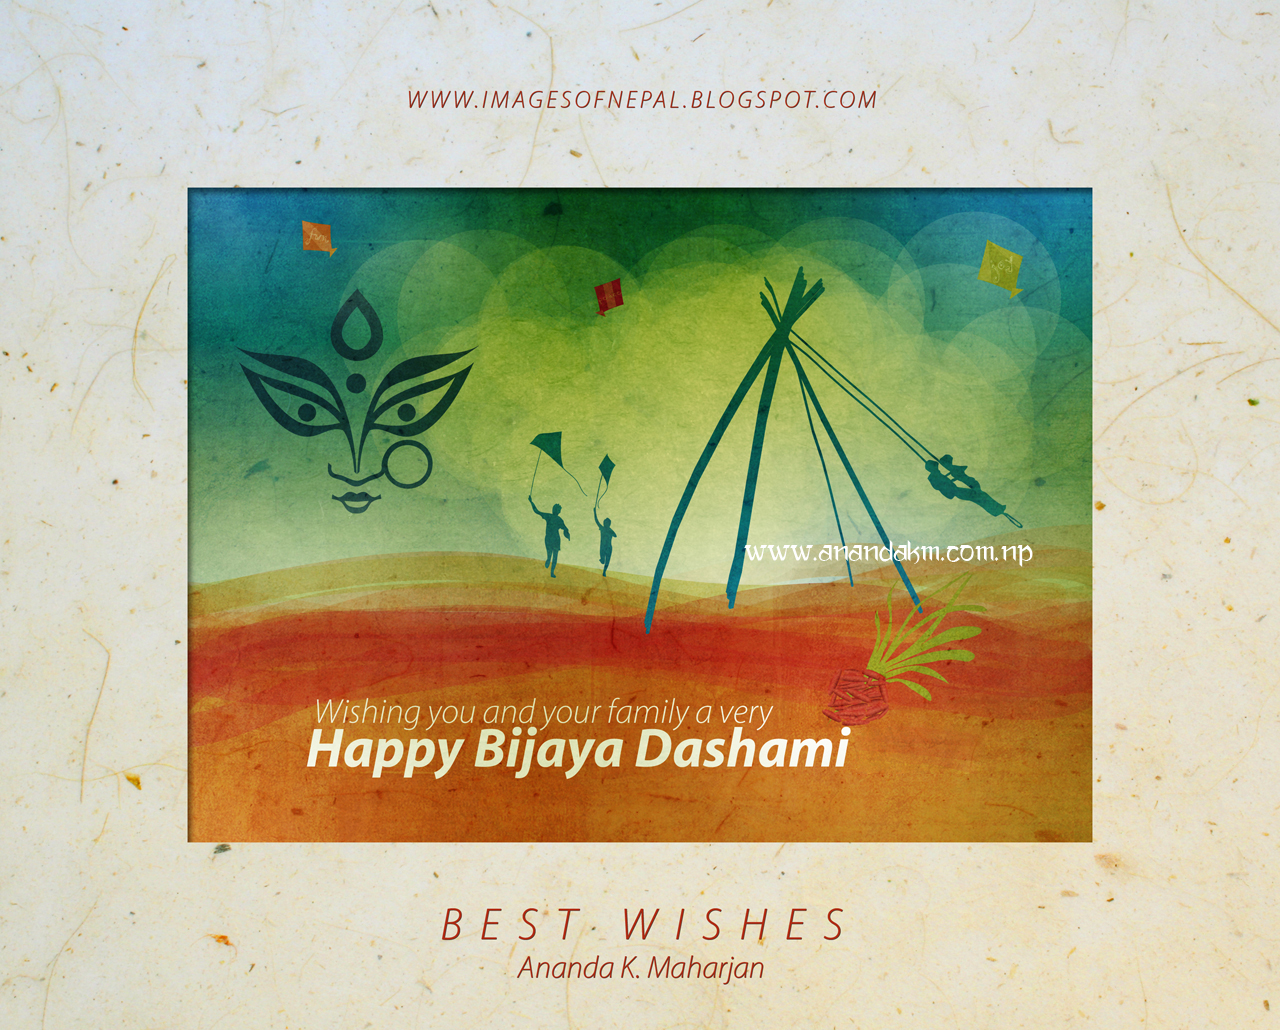 images of nepal  dashain greeting cards wallpapers 2011